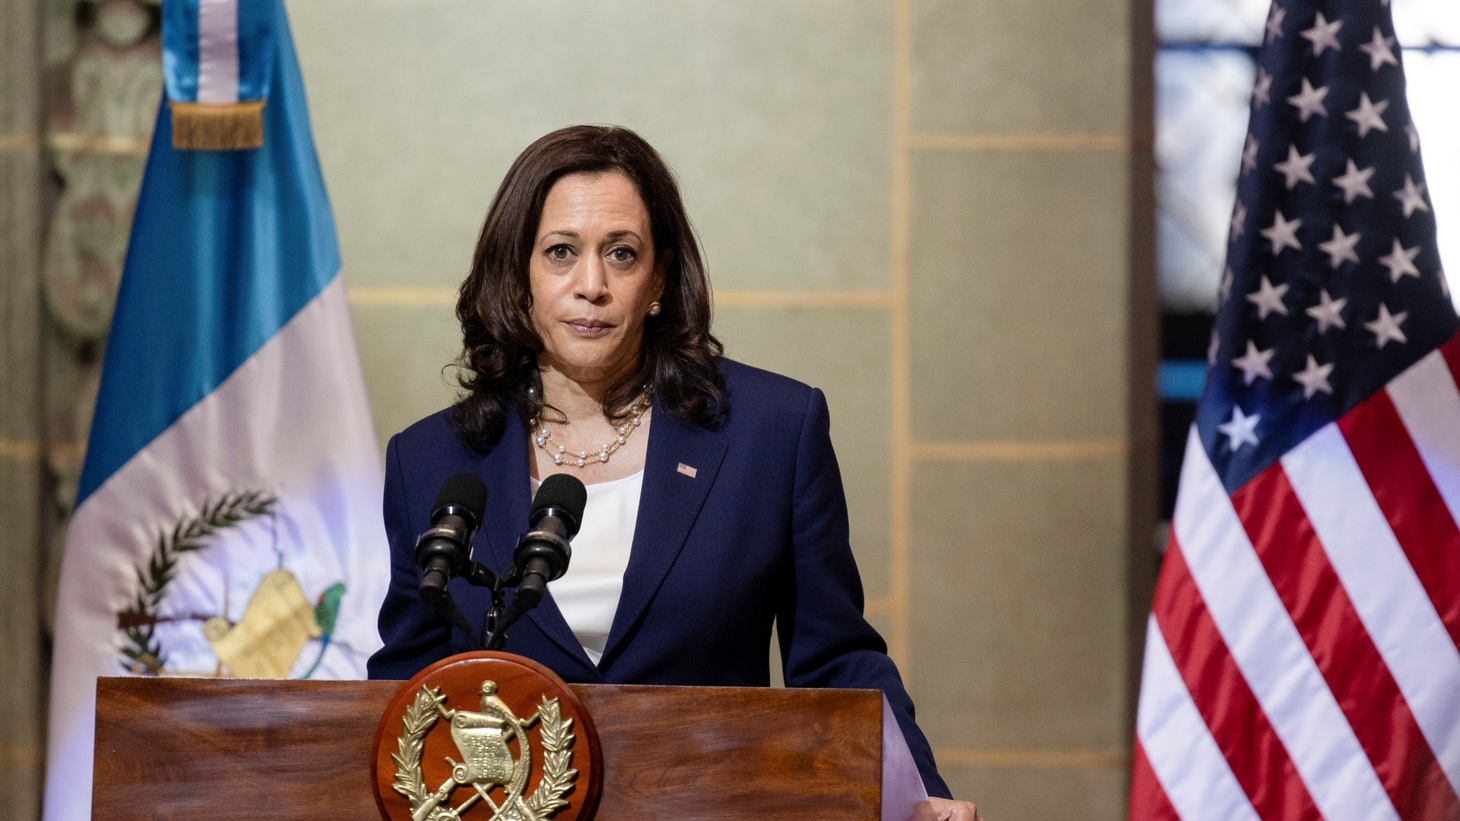 """U.S. Vice President Kamala Harris says, """"Do not come. Do not come. The United States will continue to enforce our laws and secure our borders. If you come to our border, you will be turned back."""" She was speaking about migrants heading to the U.S. at a news conference with Guatemalan President Alejandro Giammattei in Guatemala City, Guatemala June 7, 2021."""